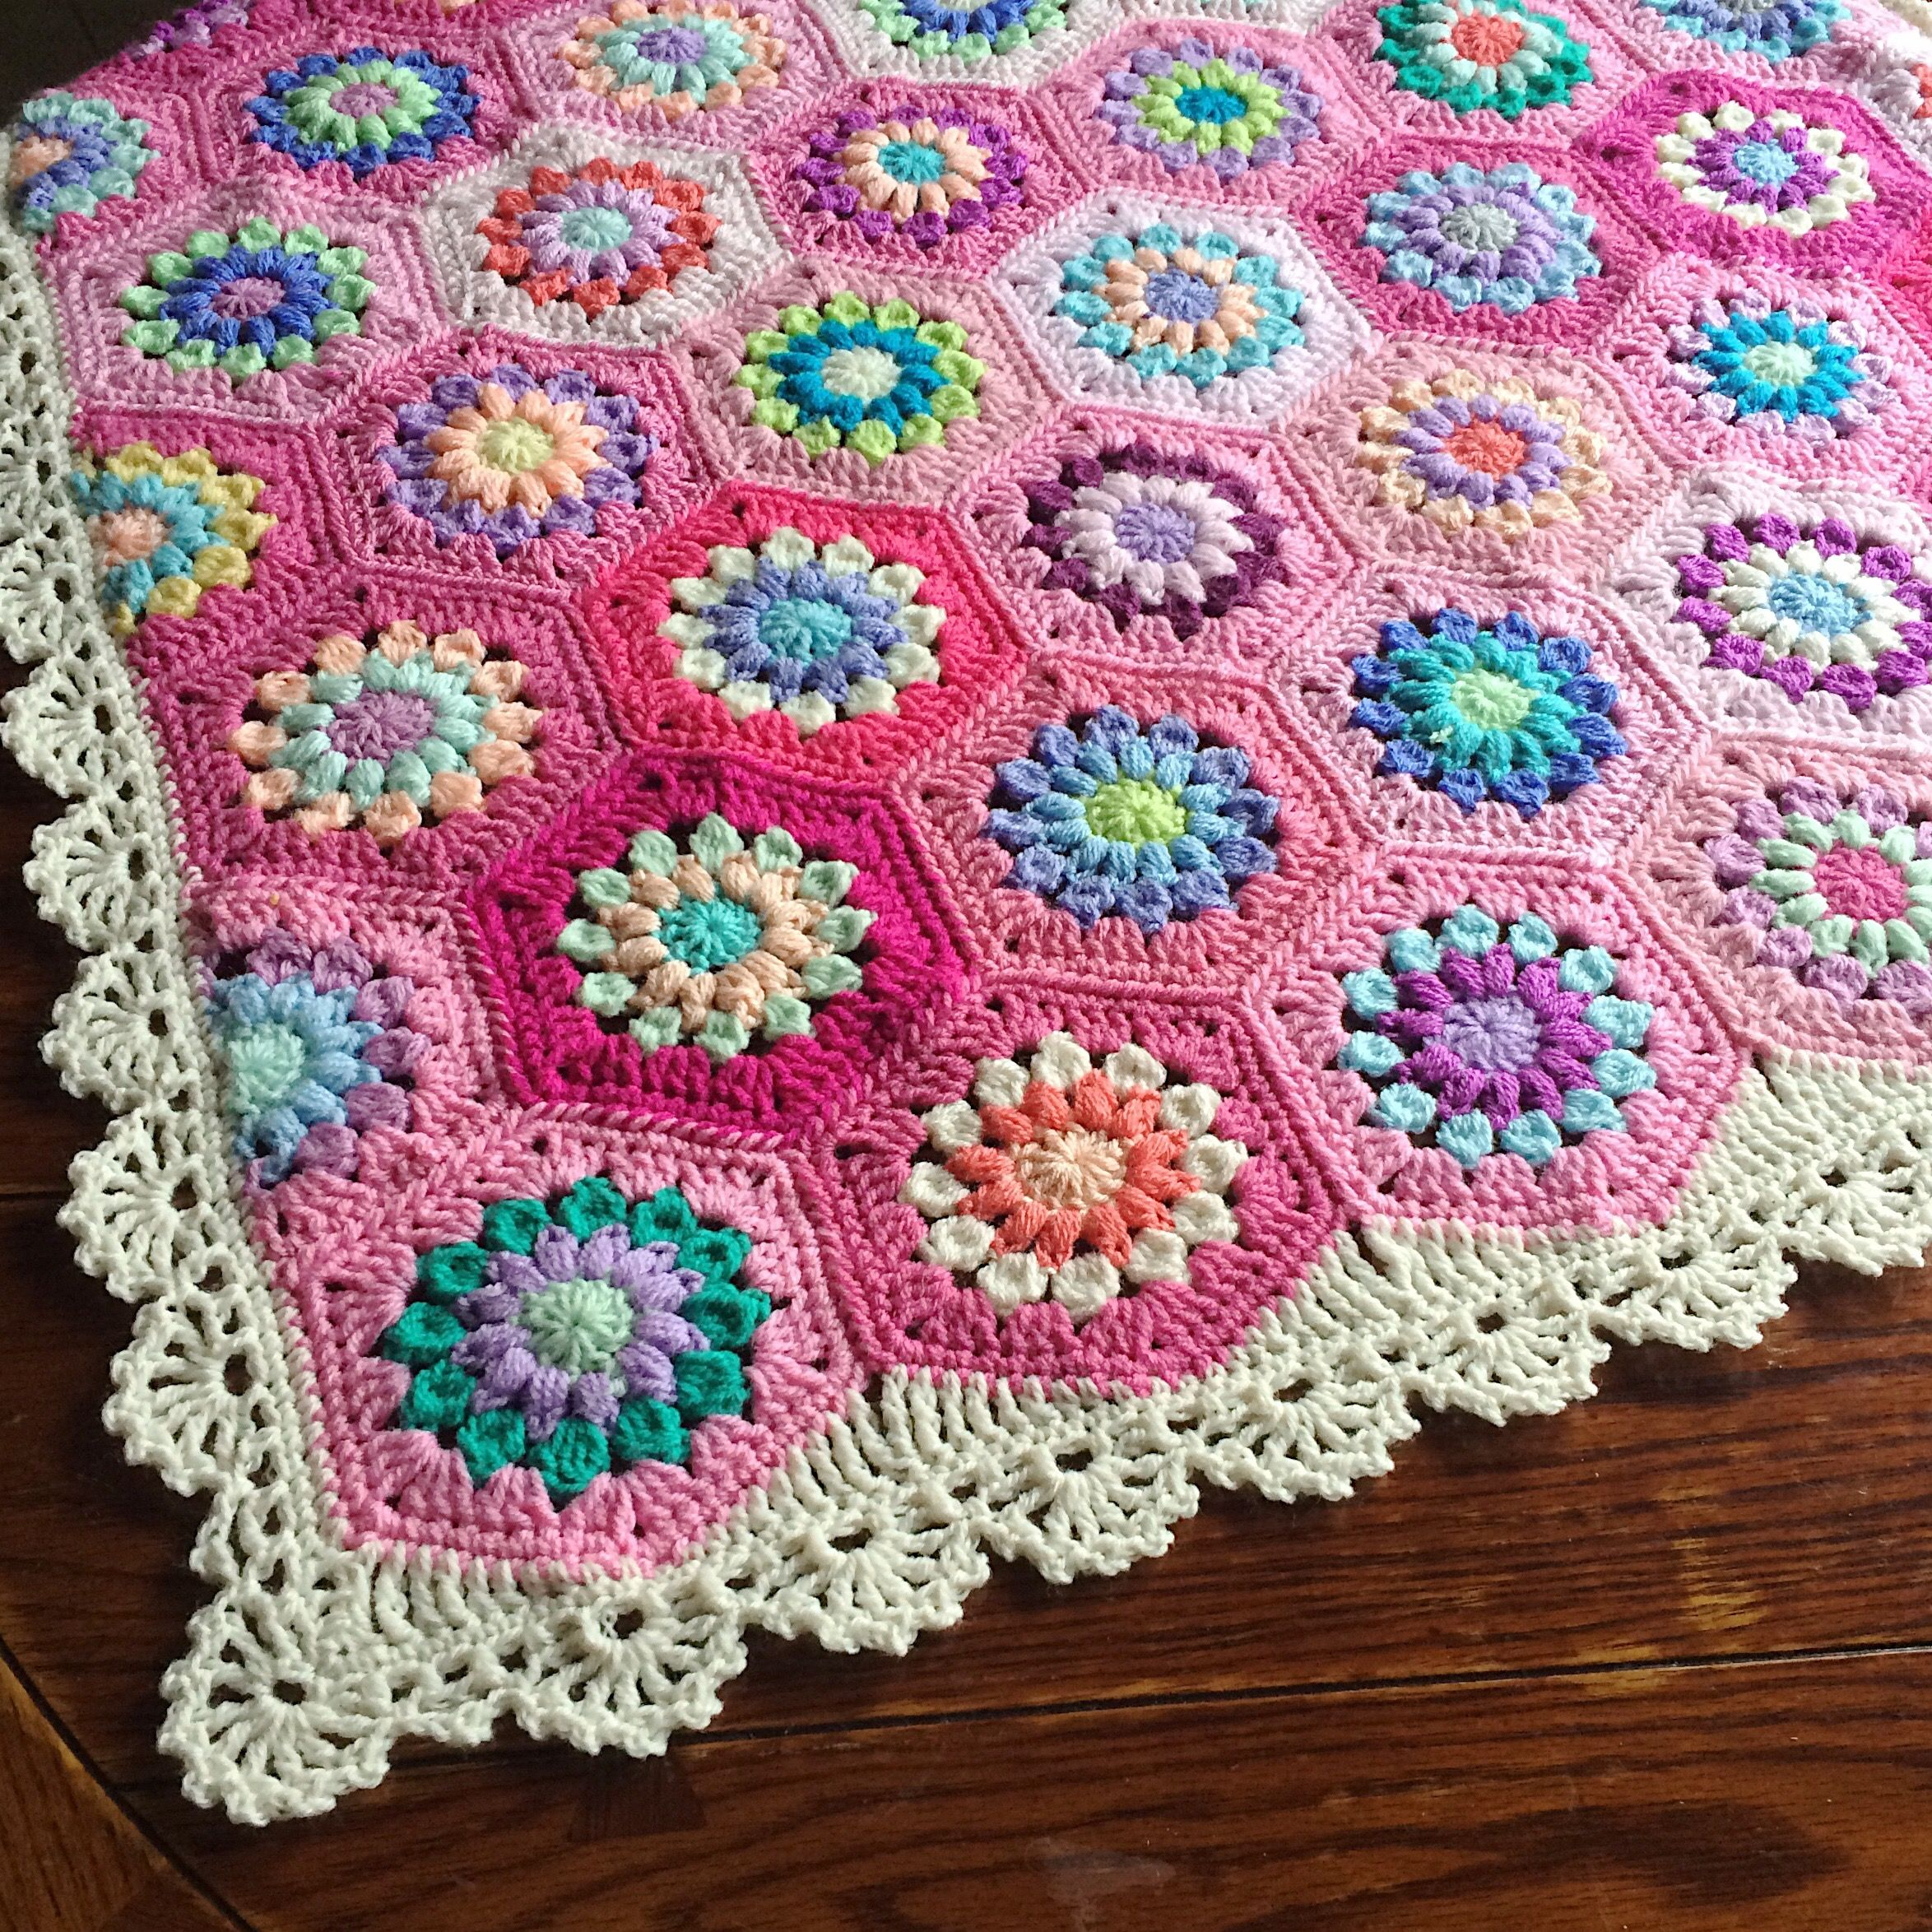 Sunburst flower join as you go baby blanket free patterntutorial sunburst flower join as you go baby blanket free patterntutorial bankloansurffo Image collections